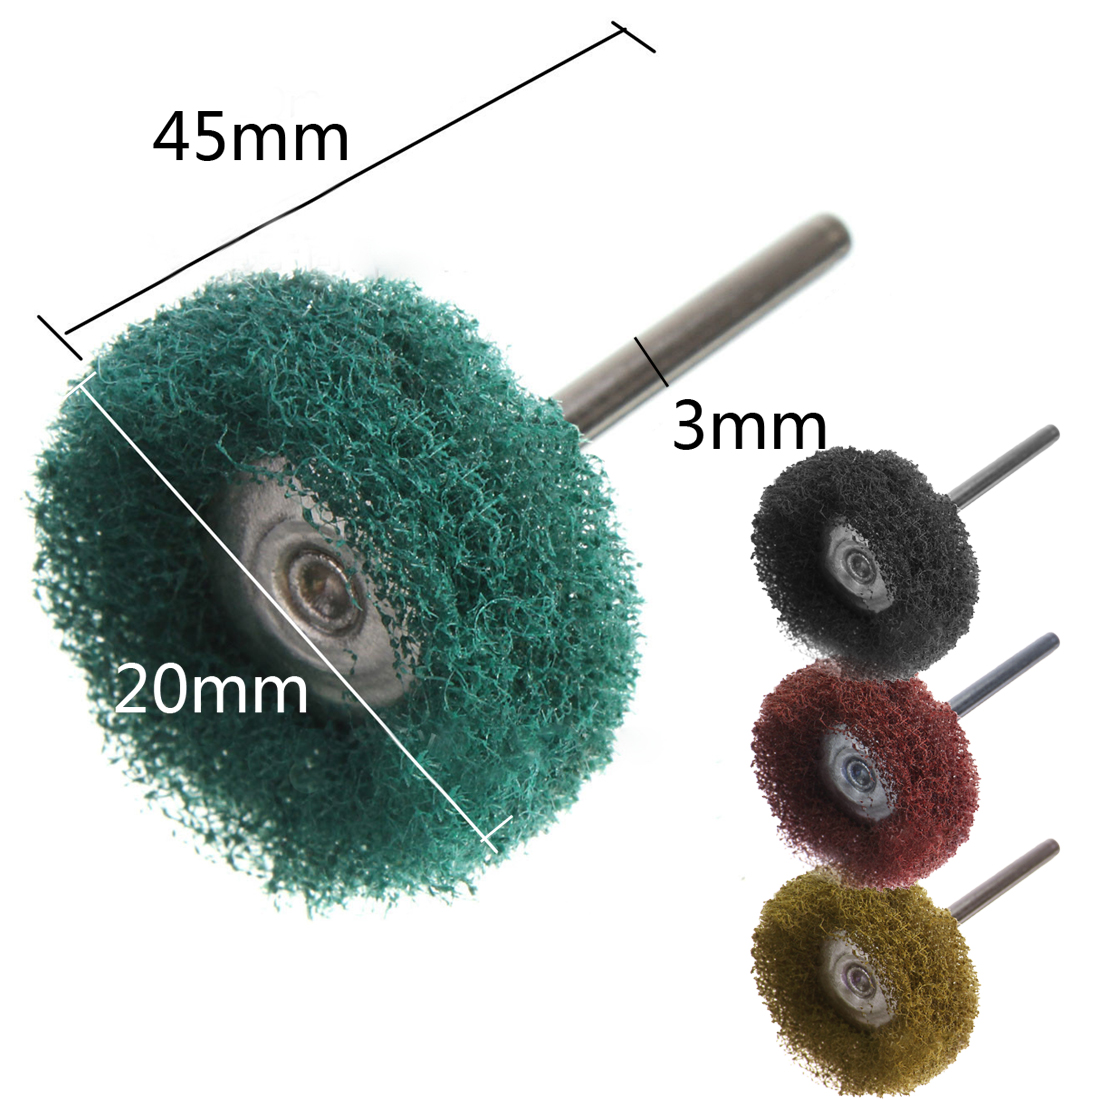 Fiber Grinding Sanding Head Buffing Polishing Wheel Scouring Pad Brush Nylon Abrasive Brush For Dremel Grinding Tools